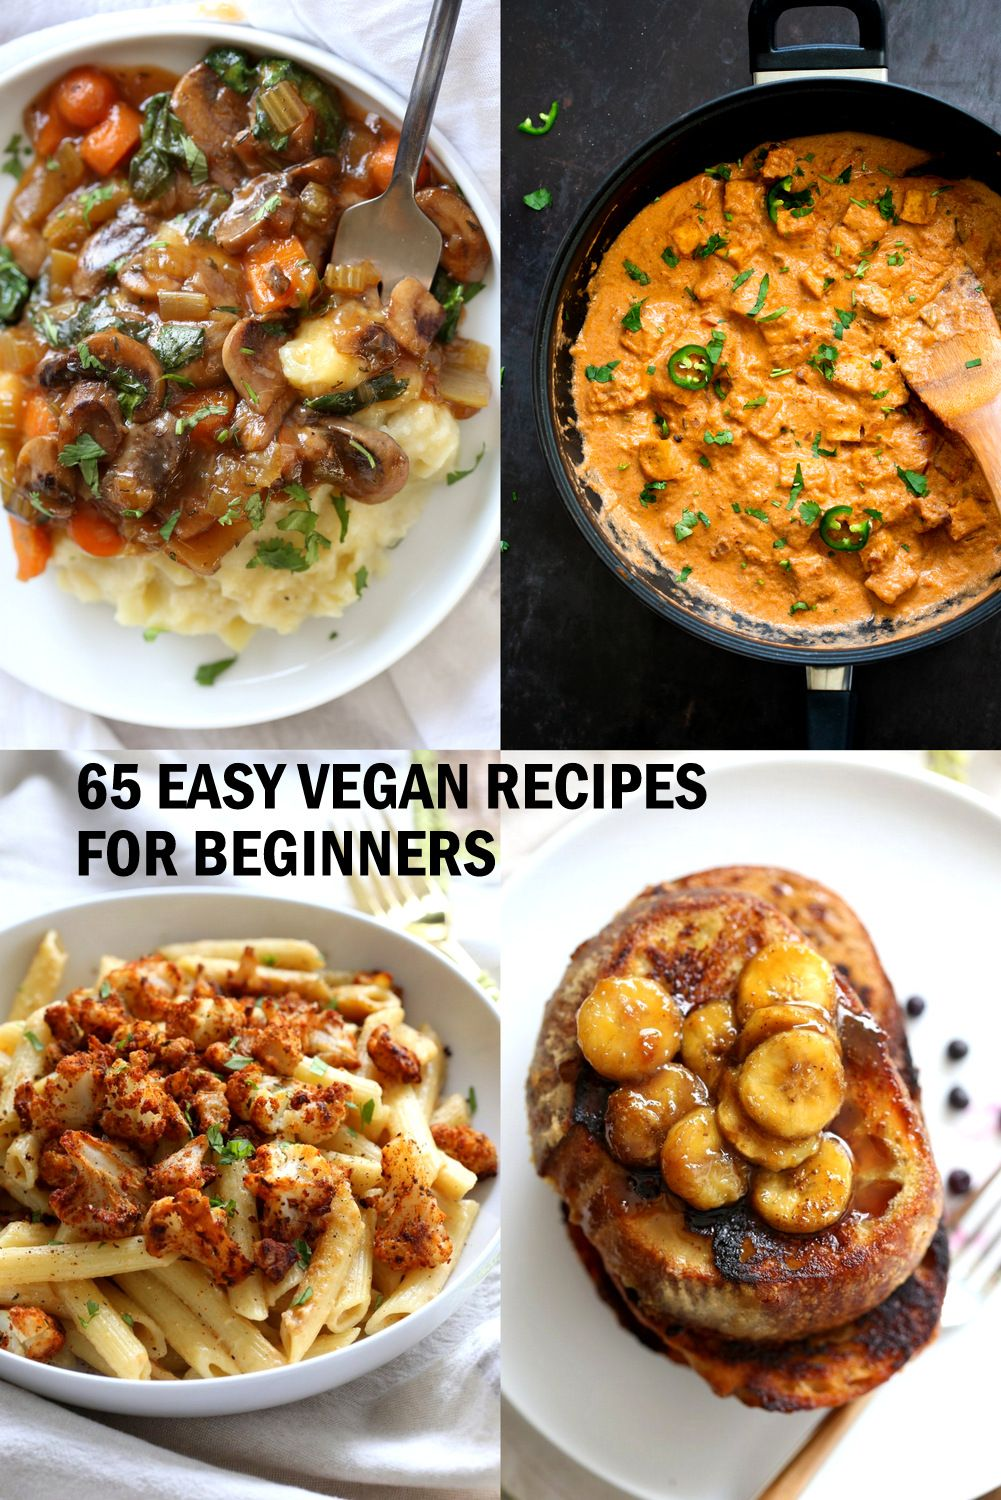 65 Easy Vegan Recipes for Beginners #easysimpledesserts